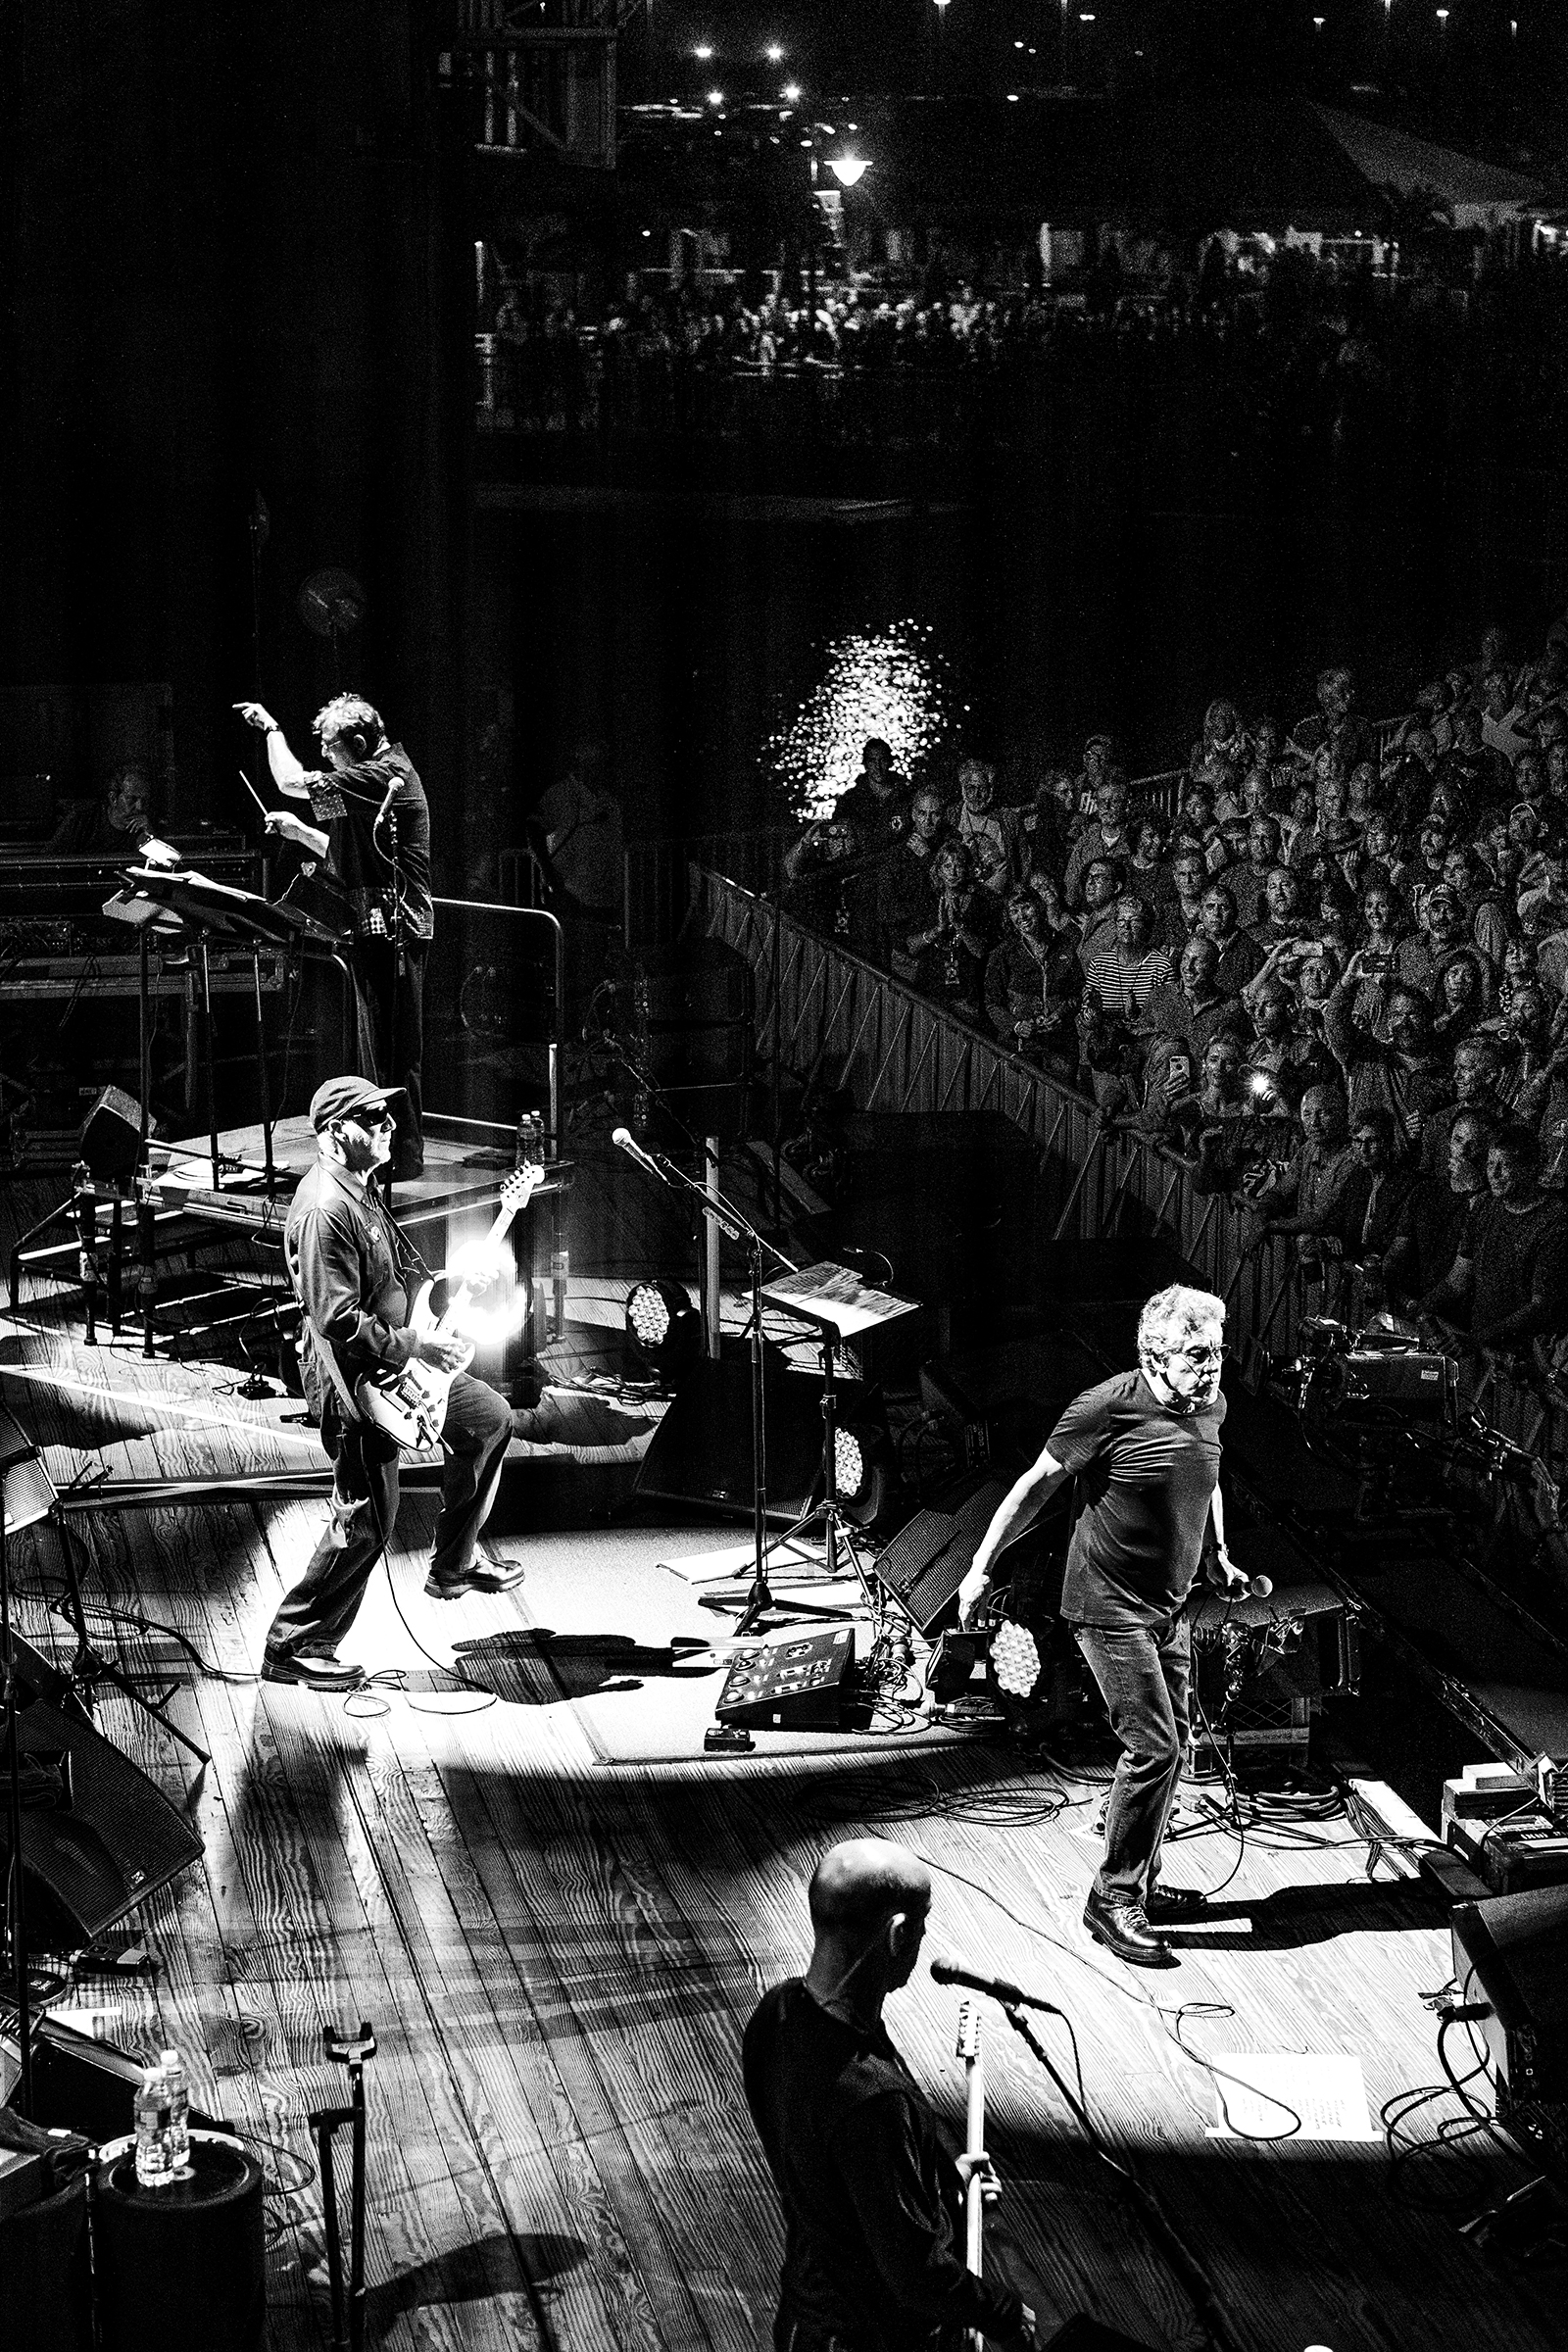 Onstage, September, The Who's current tour includes a 48-piece orchestra. Photograph by Devin Yalkin for Rolling Stone